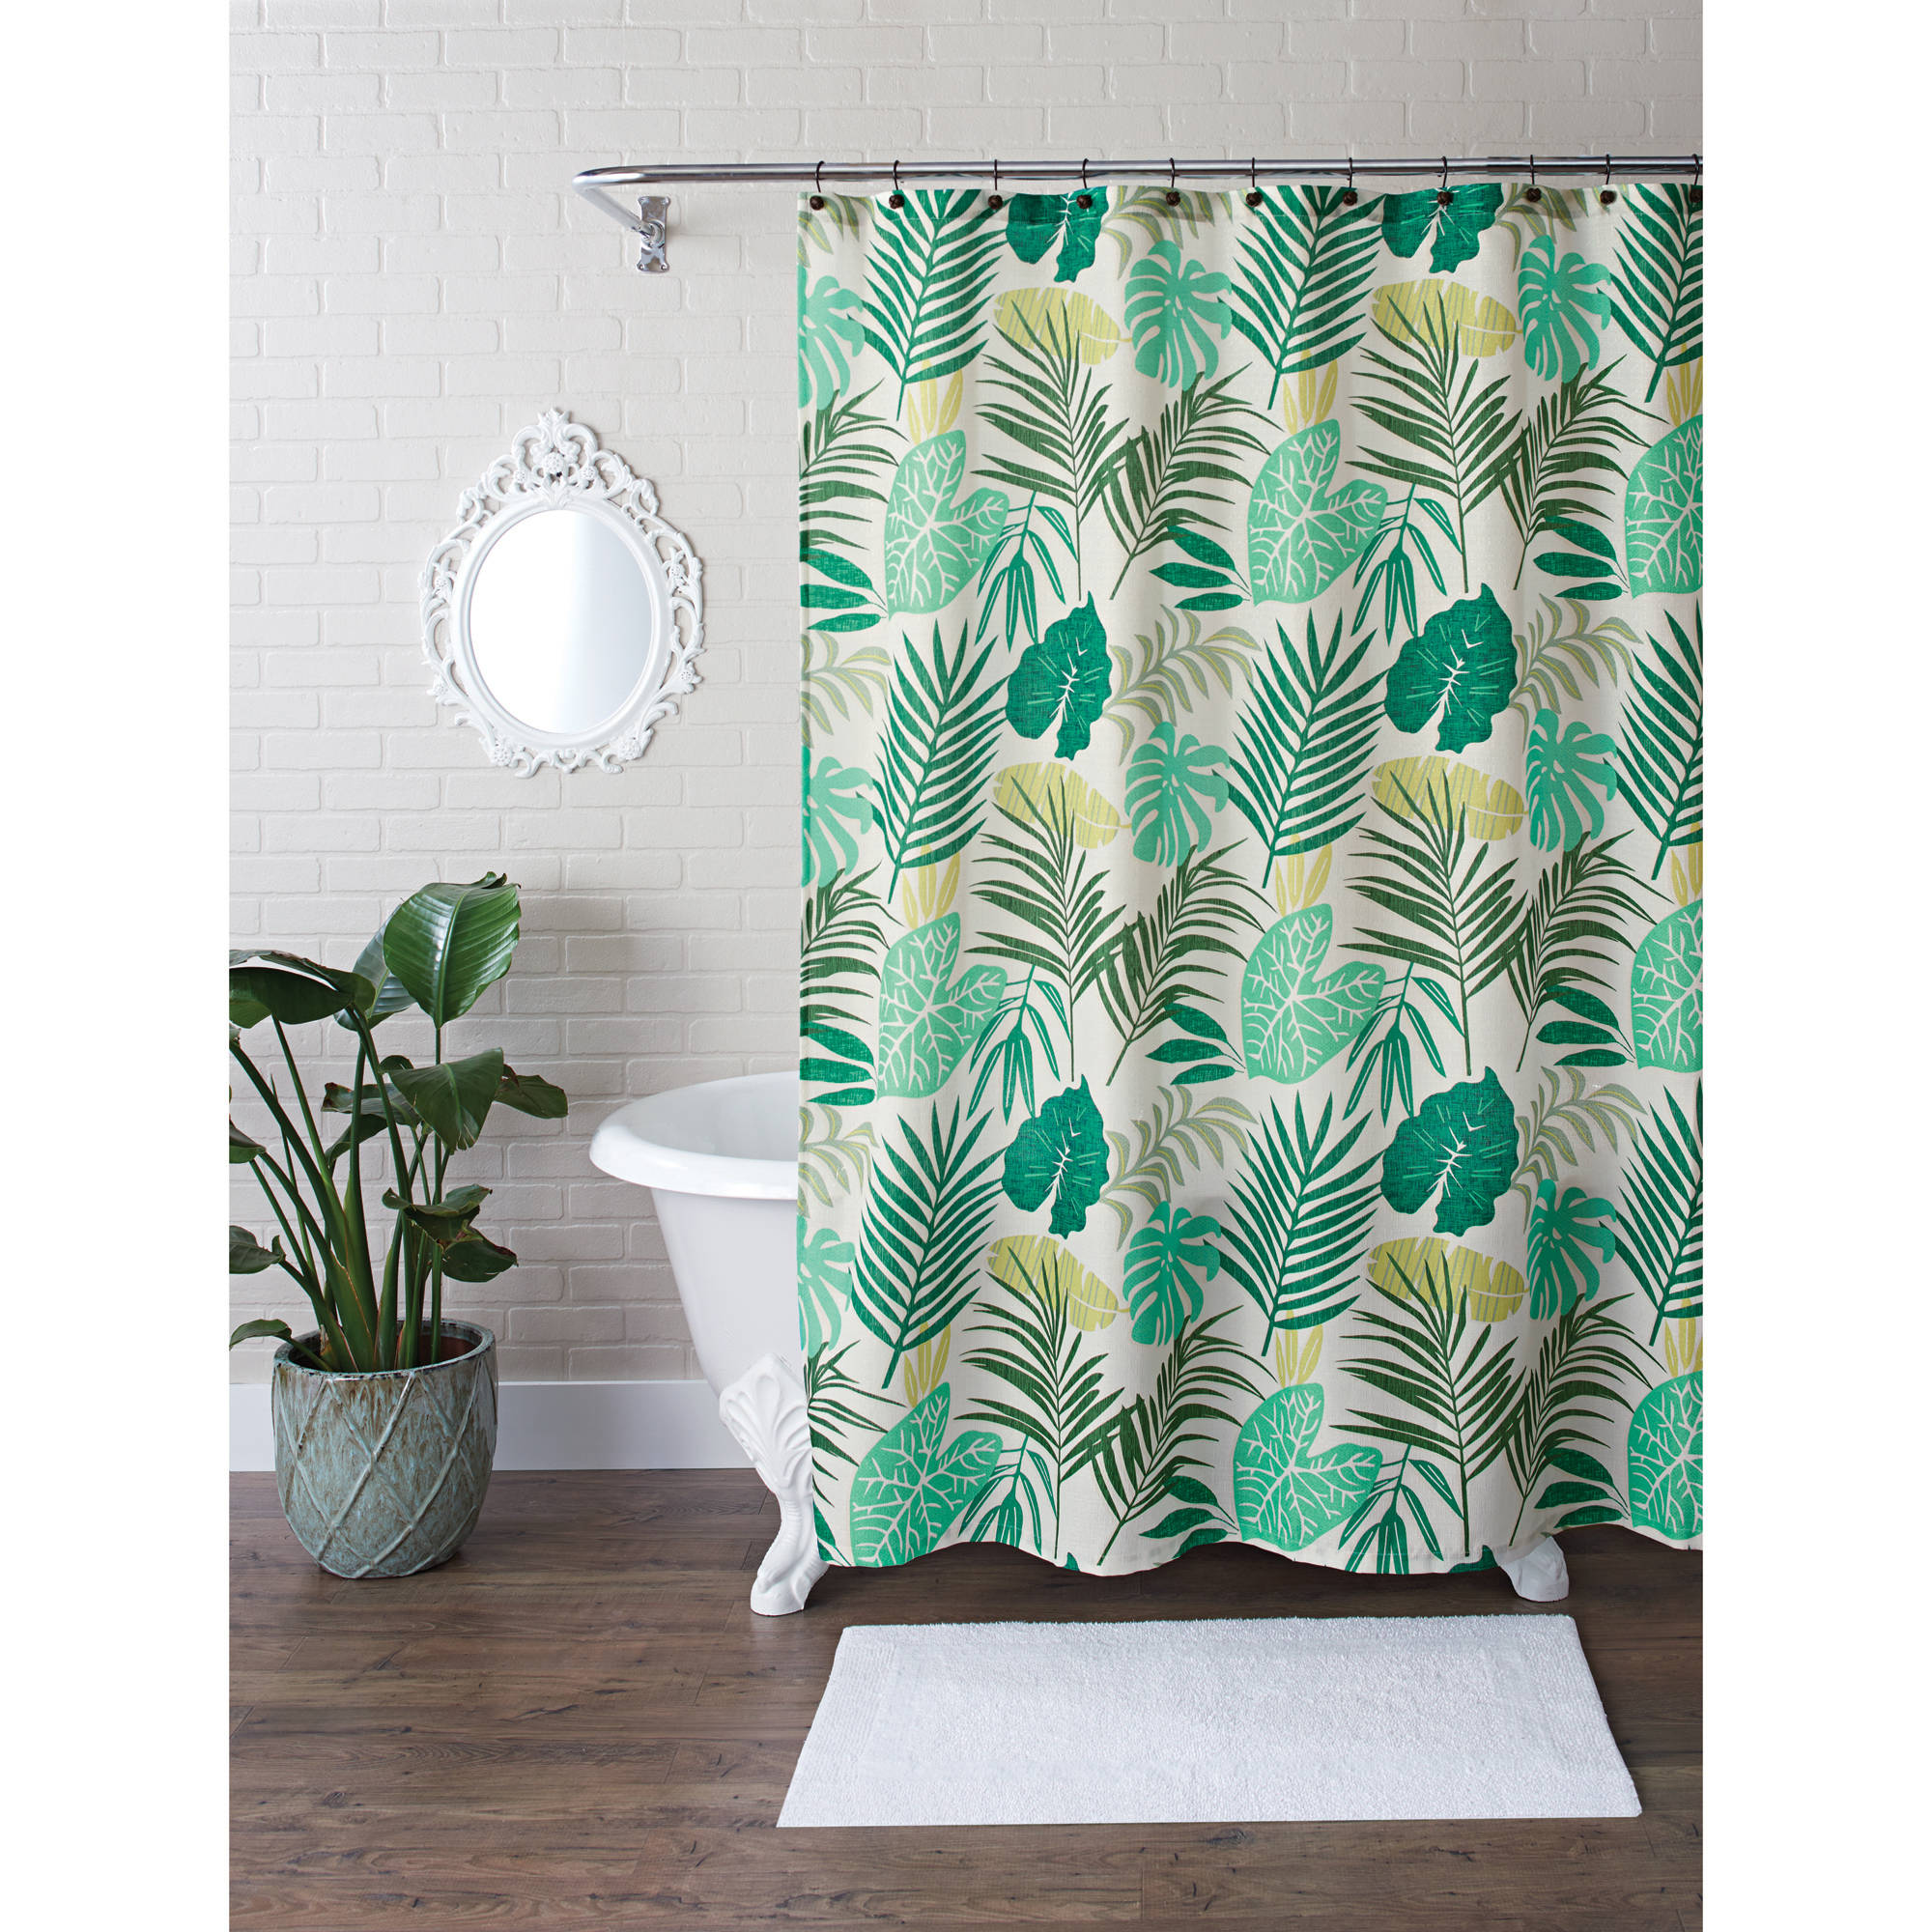 Better Homes and Gardens Tropical Palm Fabric 13-Piece Shower Curtain Set